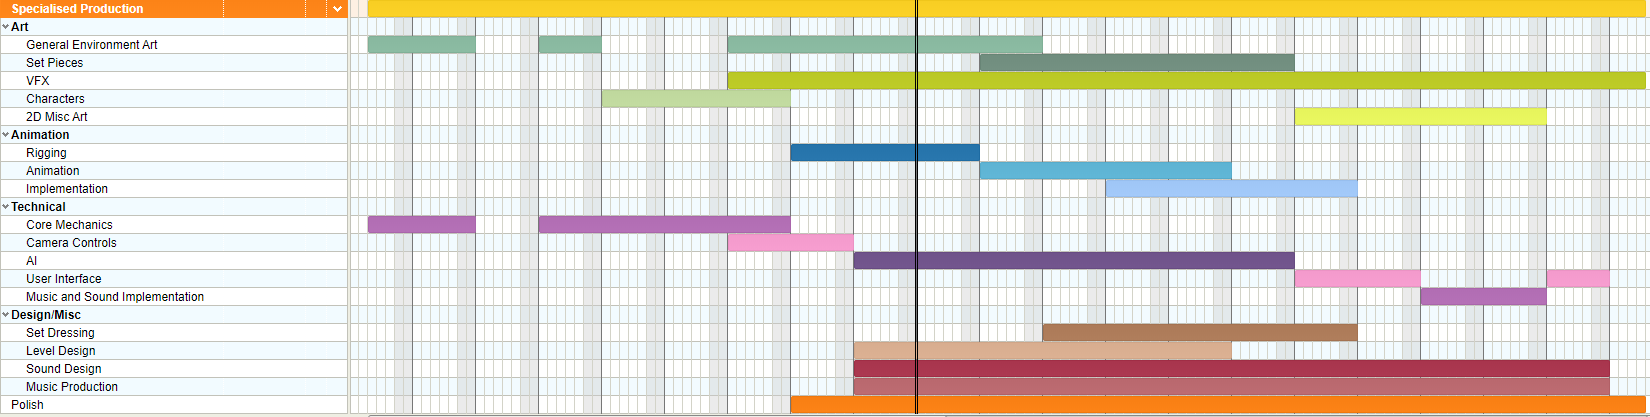 Fig 1 -  Current state of the gantt chart for production